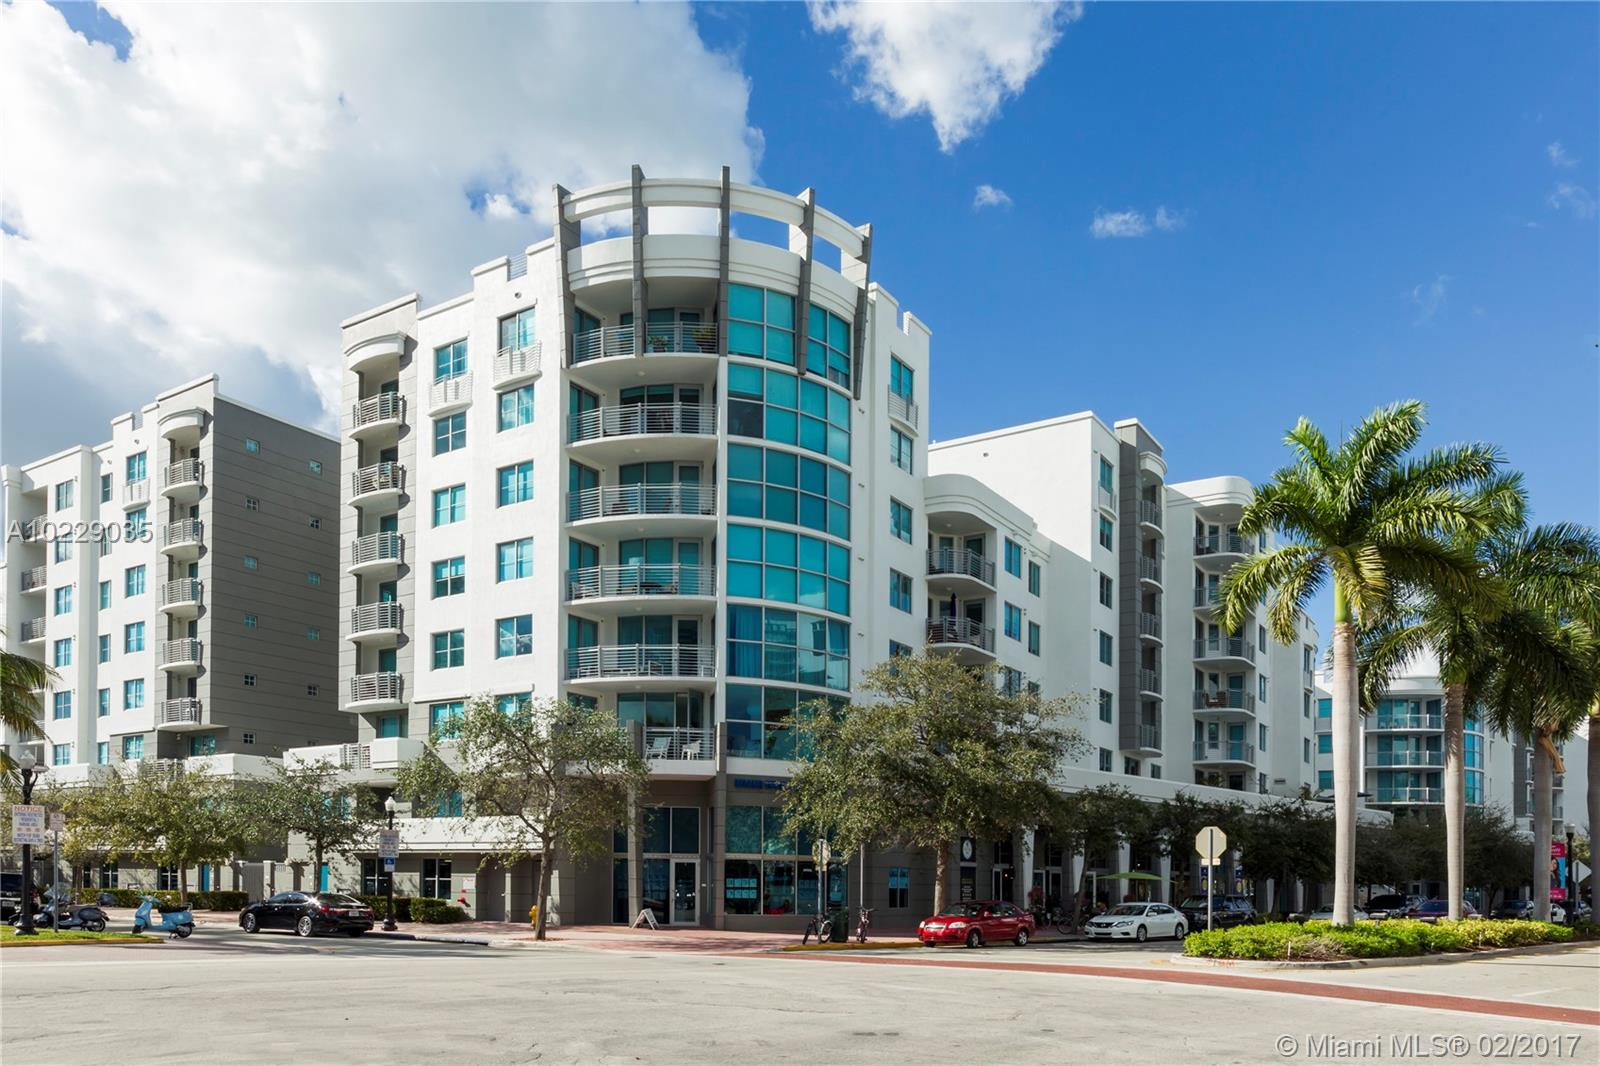 110 Washington Ave # 1805, Miami Beach, FL 33139